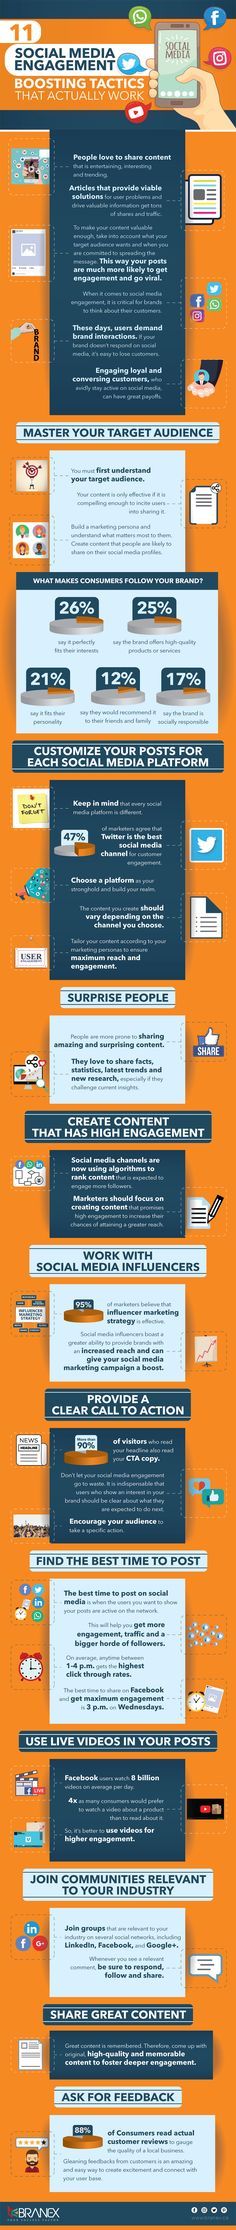 11 Social Media Engagement Boosting Tactics that Actually Work (Infographic) - Bakerview Consulting Engagement Tips, Social Media Engagement, Le Social, Social Media Content, Marketing Plan, Social Media Marketing, Content Marketing, Online Marketing, Marketing Tactics